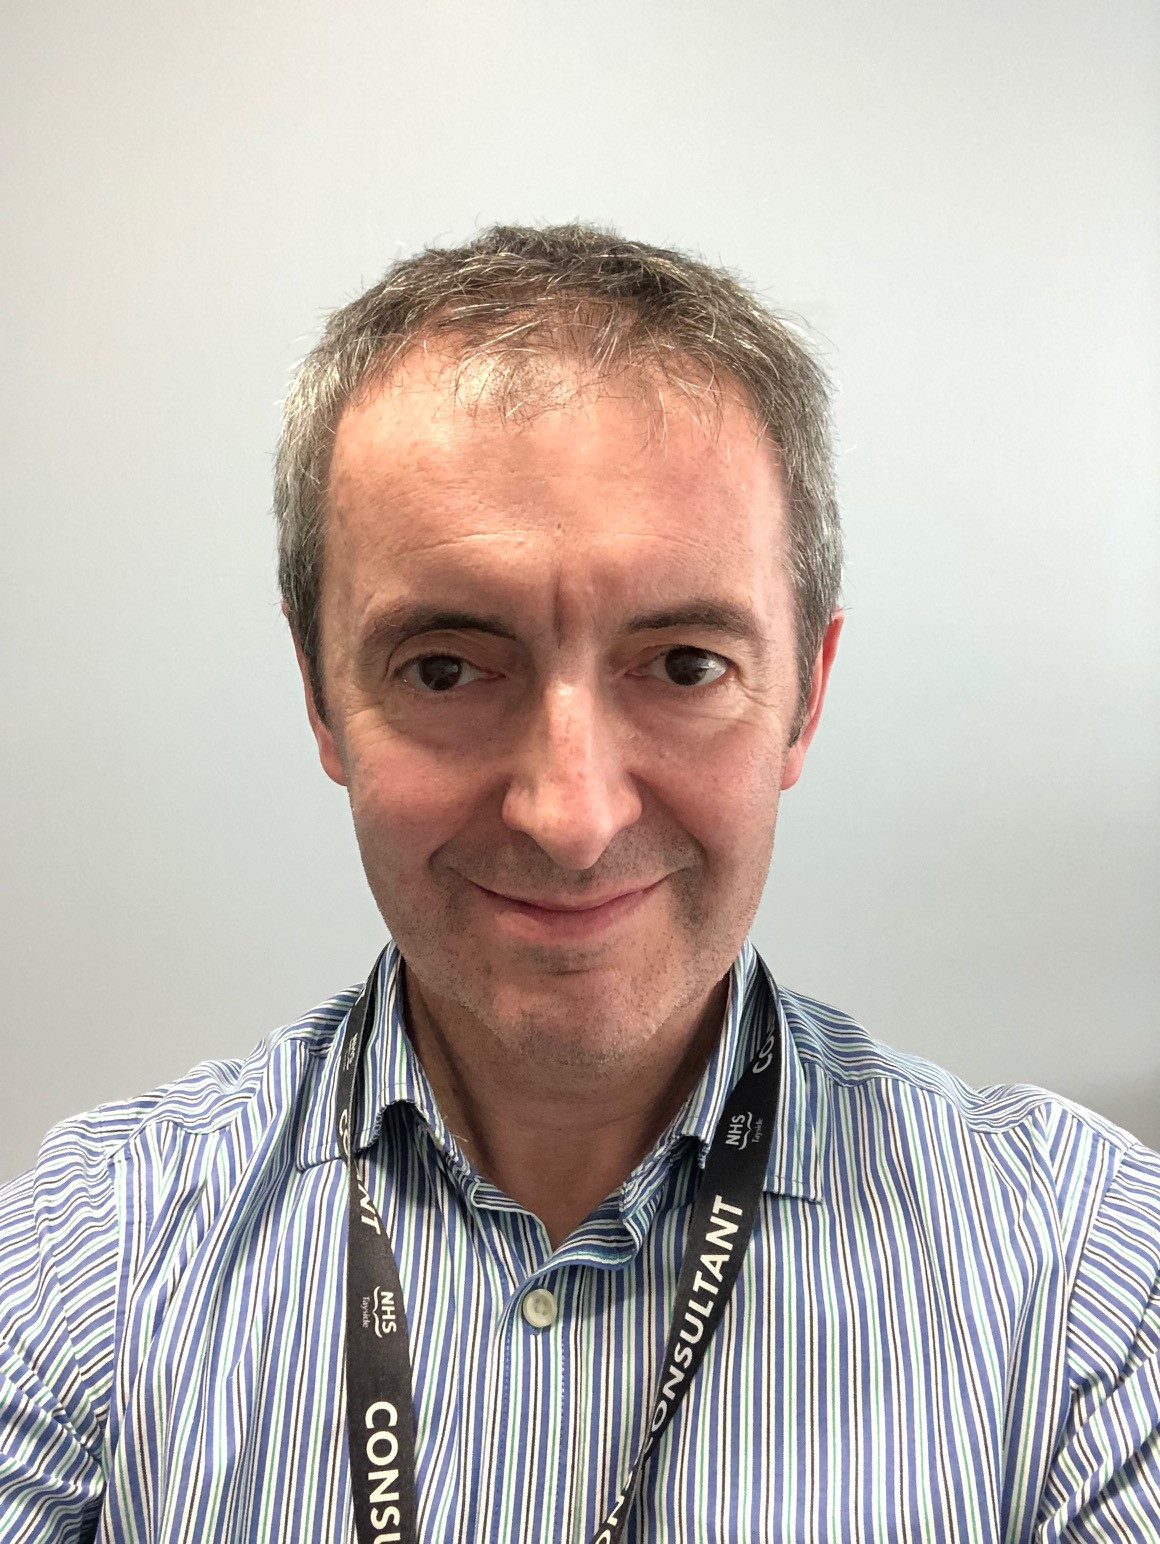 Dr Robin Smith - To book an appointment with Dr Smith please call 01382 549088 or contact us.